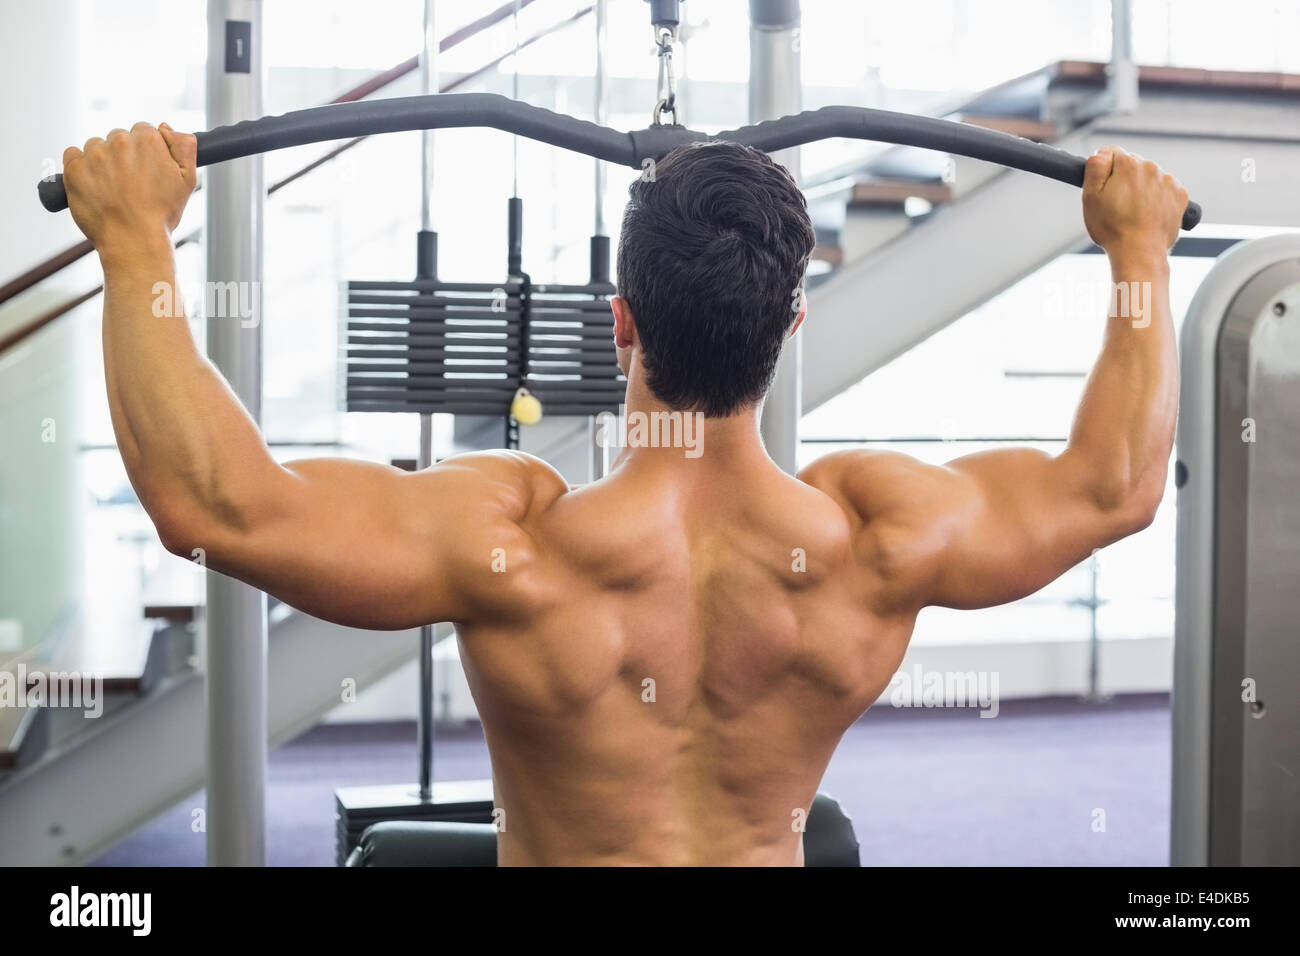 Muscular Back Weights Stockfotos & Muscular Back Weights Bilder ...